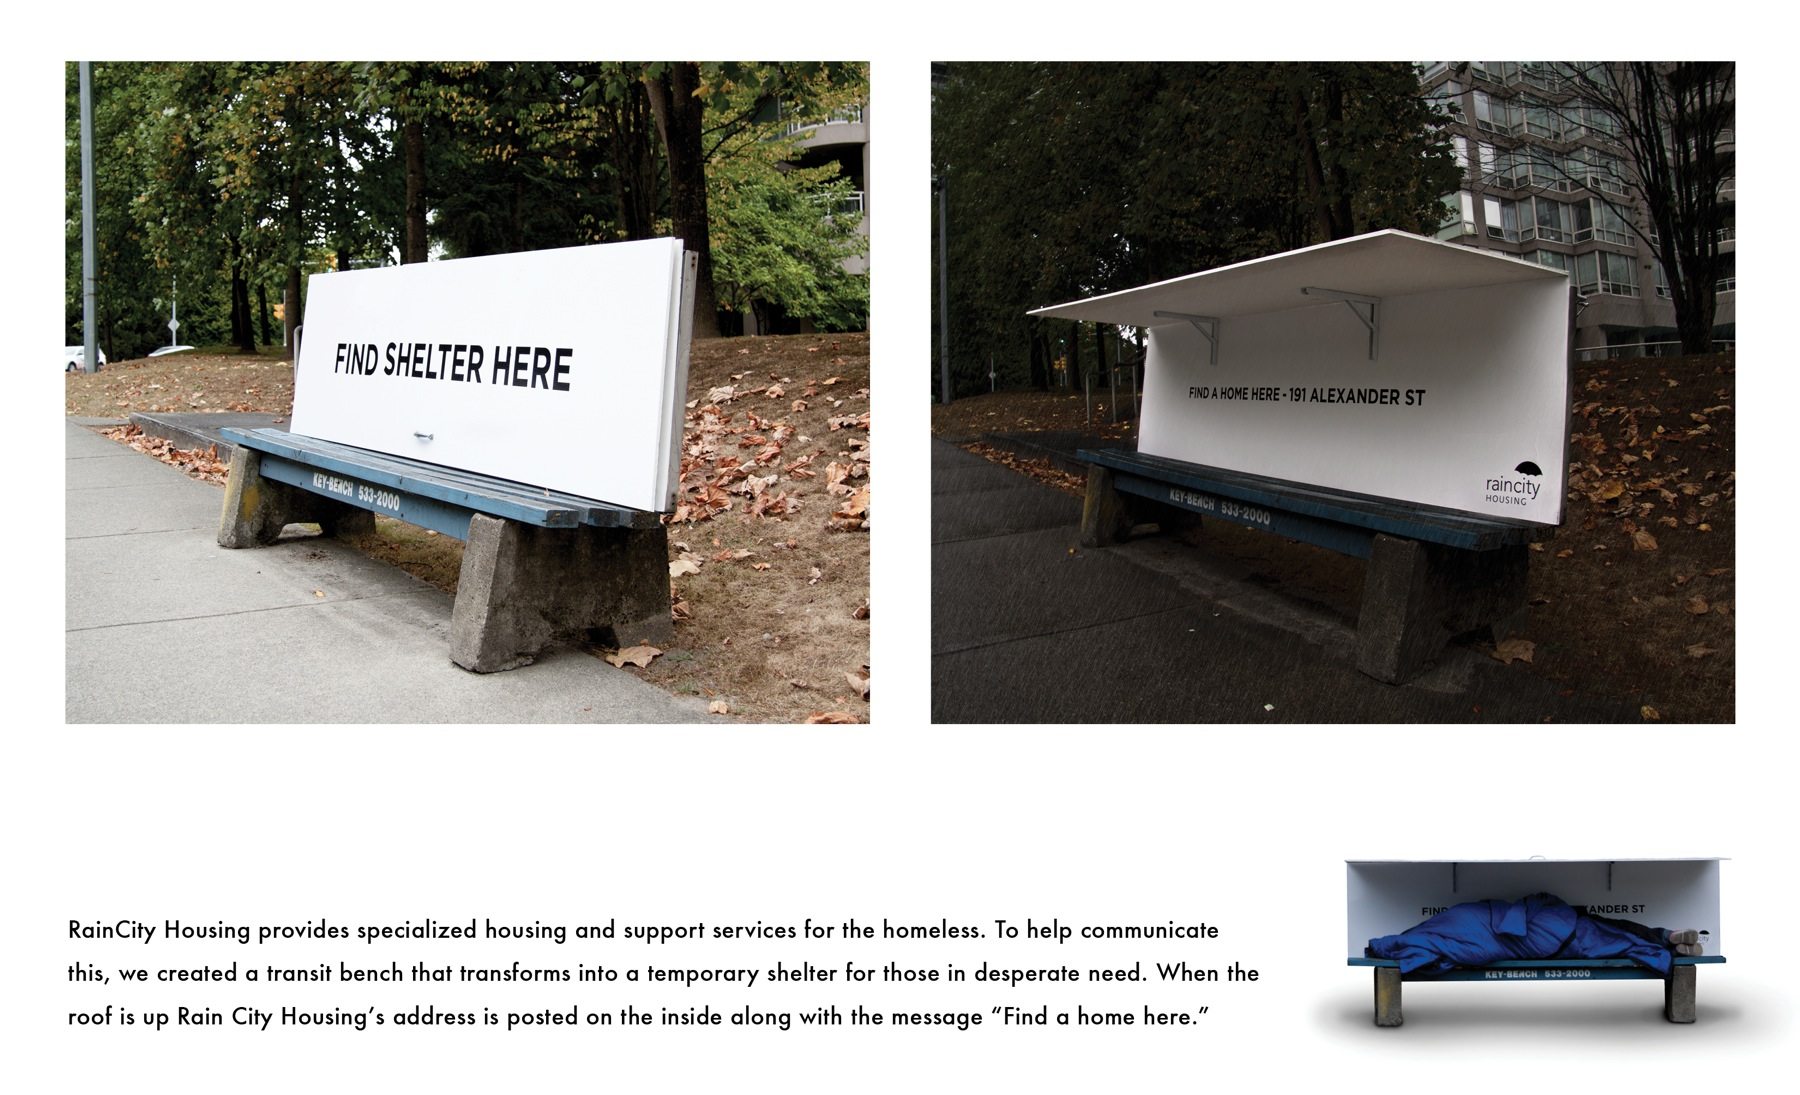 Homeless Shelter Pop Up : A bench for sitting and shelter kindness